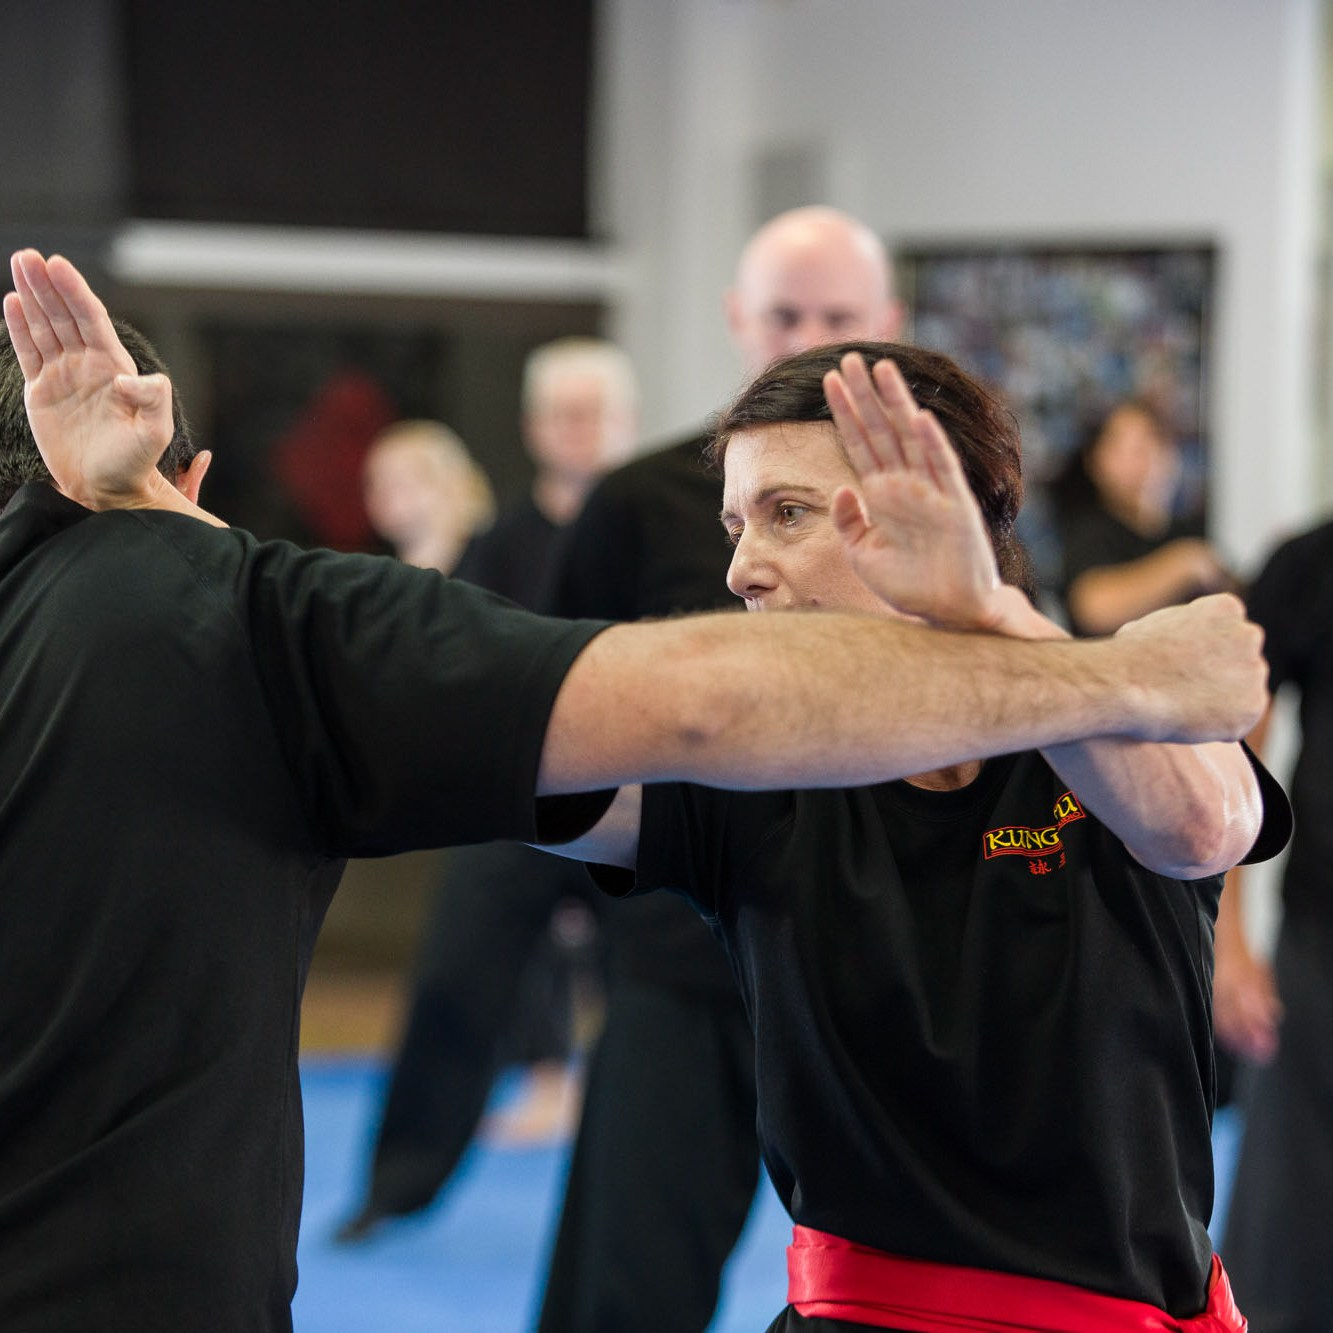 Woman applying kung fu round punch defence. Wing Chun Kung Fu Studio 118 South Pine Road Brendale Qld Australia.